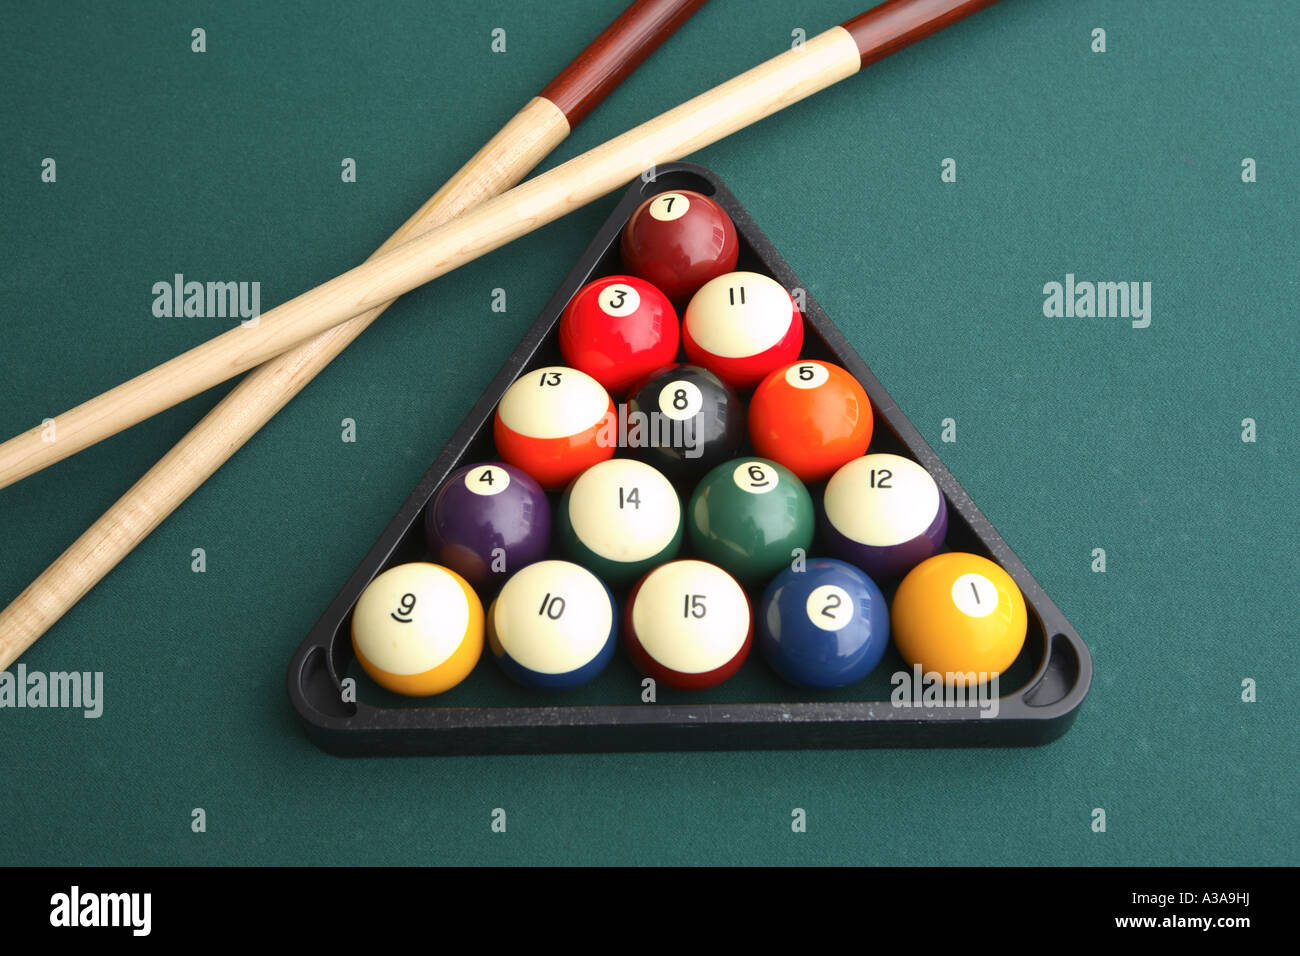 ash products canvas print cue picture pool unframed room wall billiards art framed game balls panel table